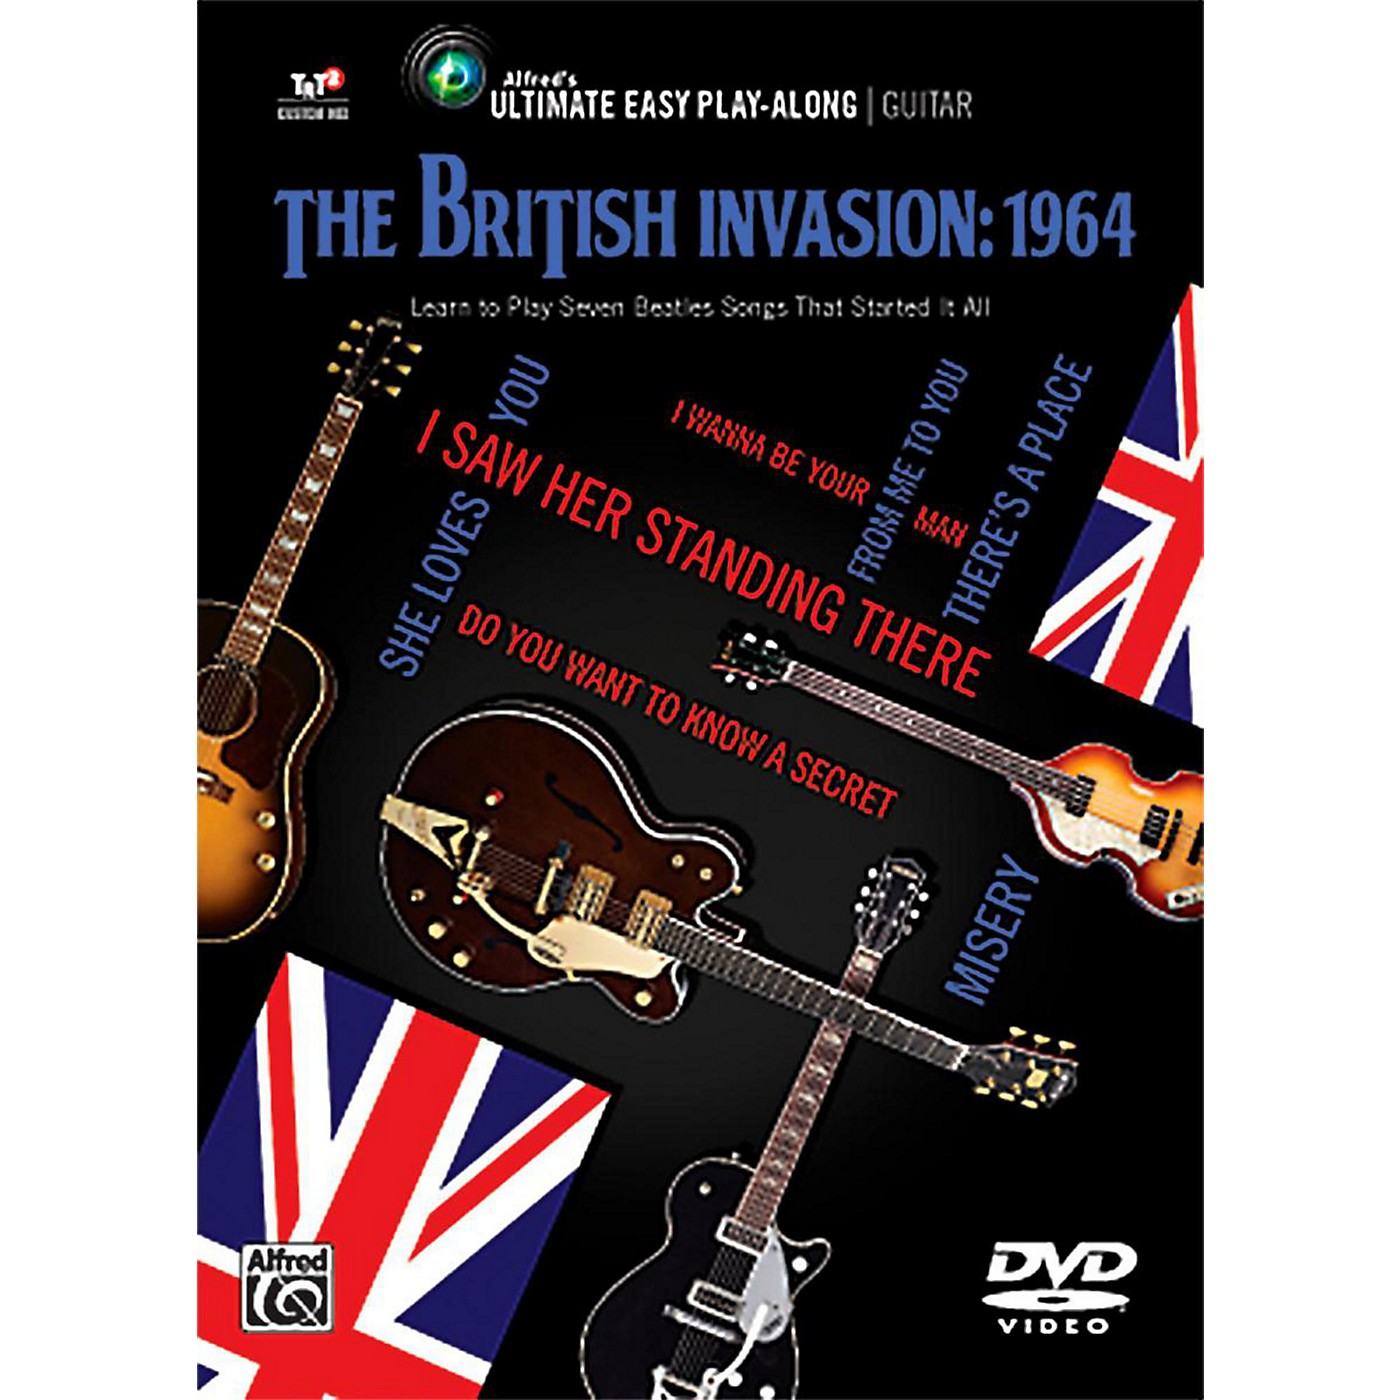 Alfred The British Invasion 1964 - Ultimate Easy Guitar Play-Along DVD thumbnail